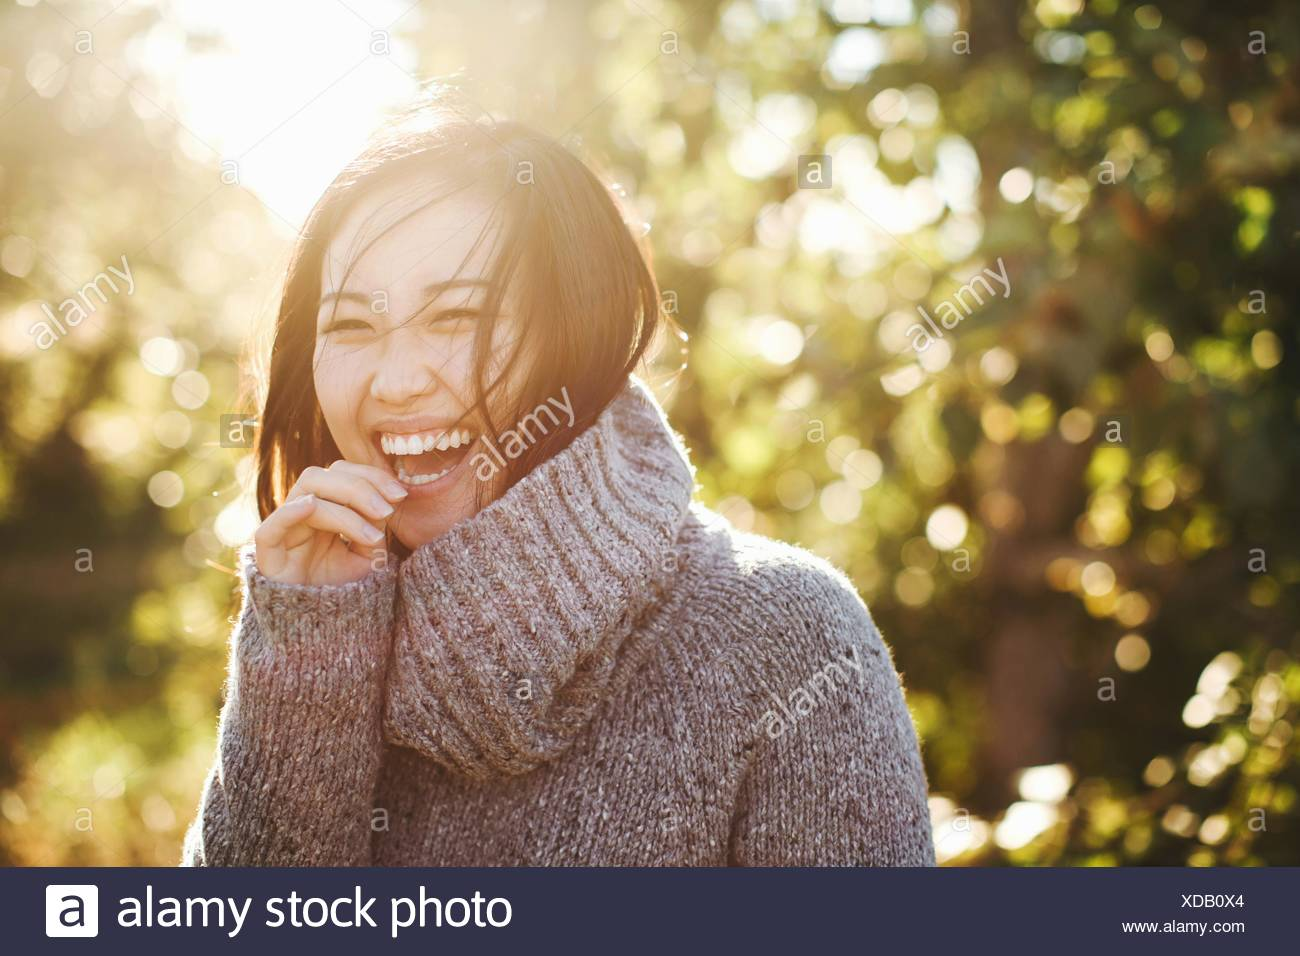 Portrait of young woman in rural environment, laughing - Stock Image